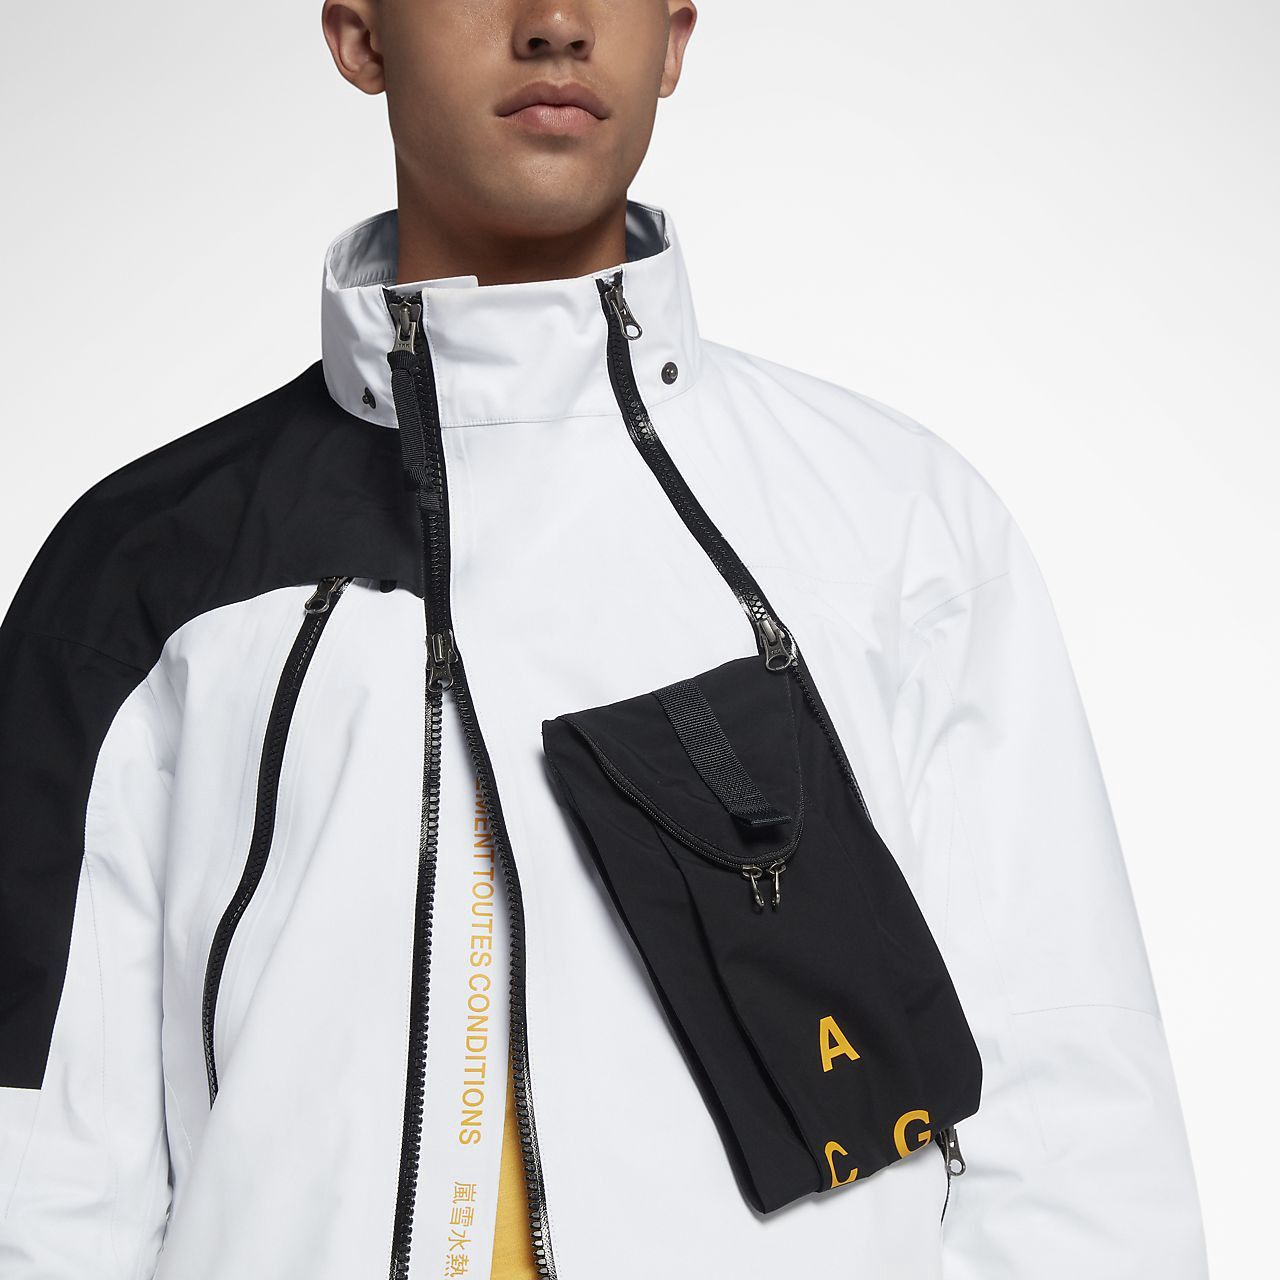 Nike NikeLab ACG Gore Tex Deploy Jacket White Black 923952 100 Size XL